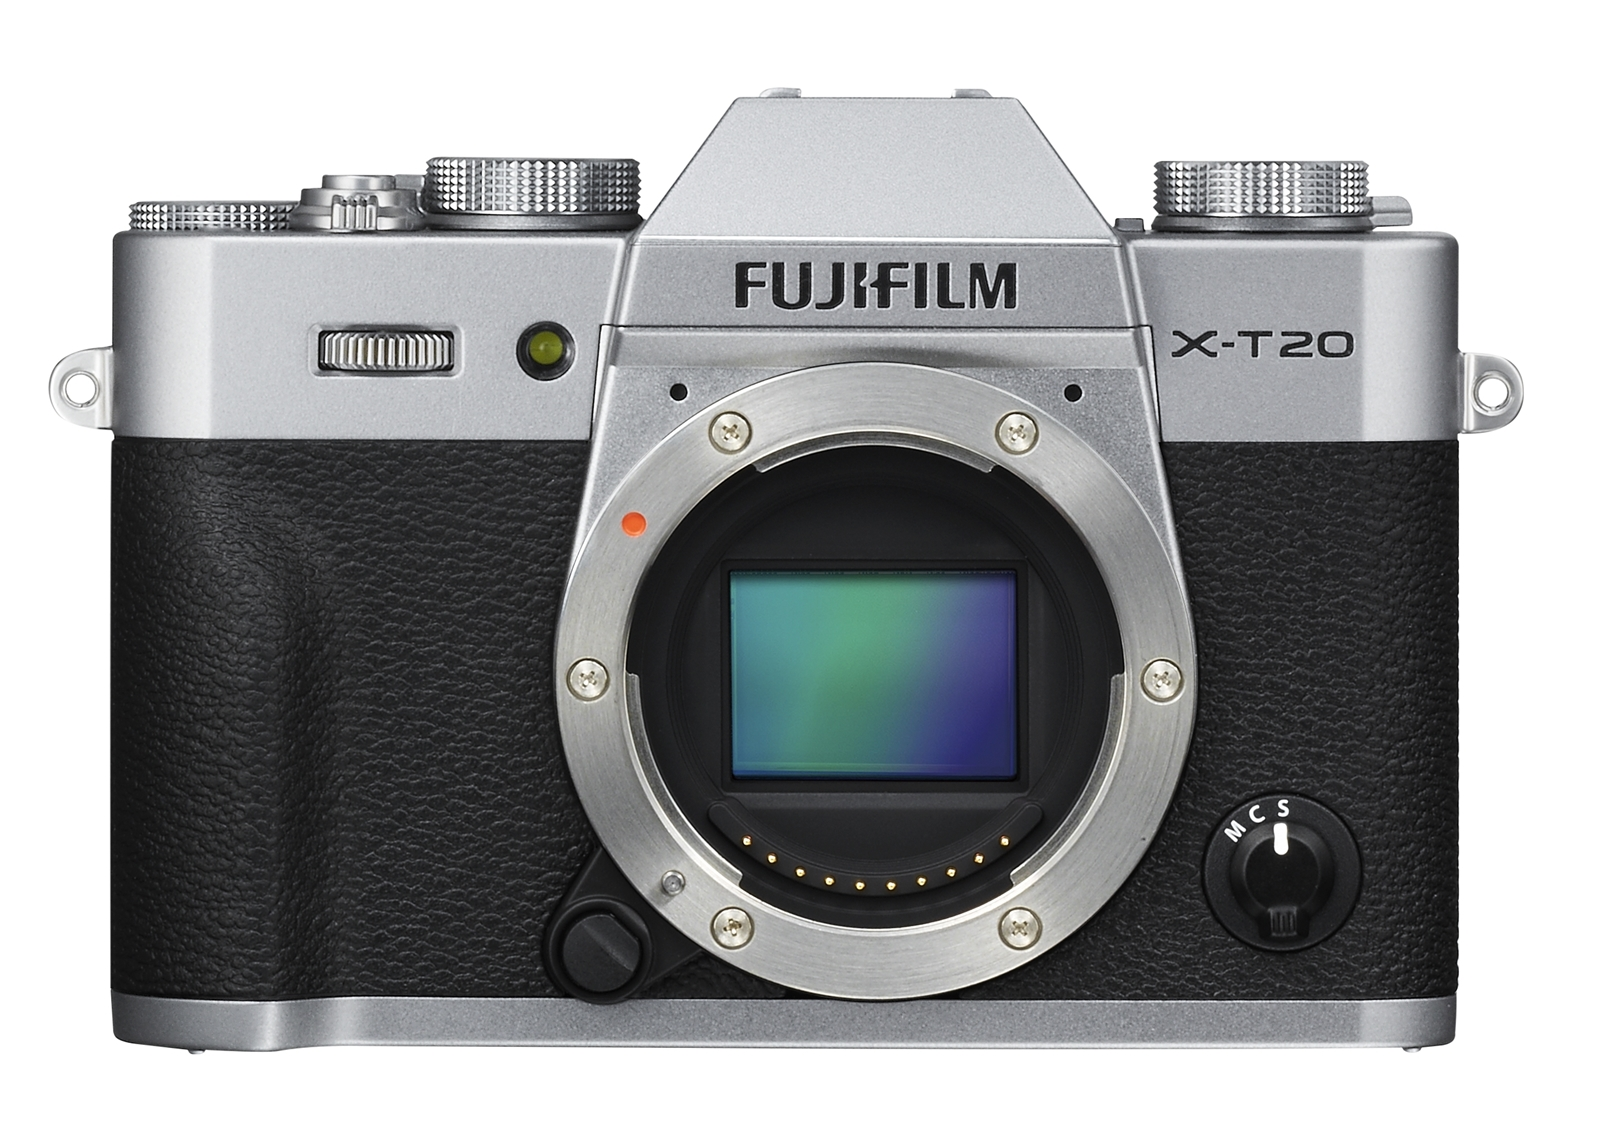 camera, fujifilm, mirrorless camera, X series, x-t20